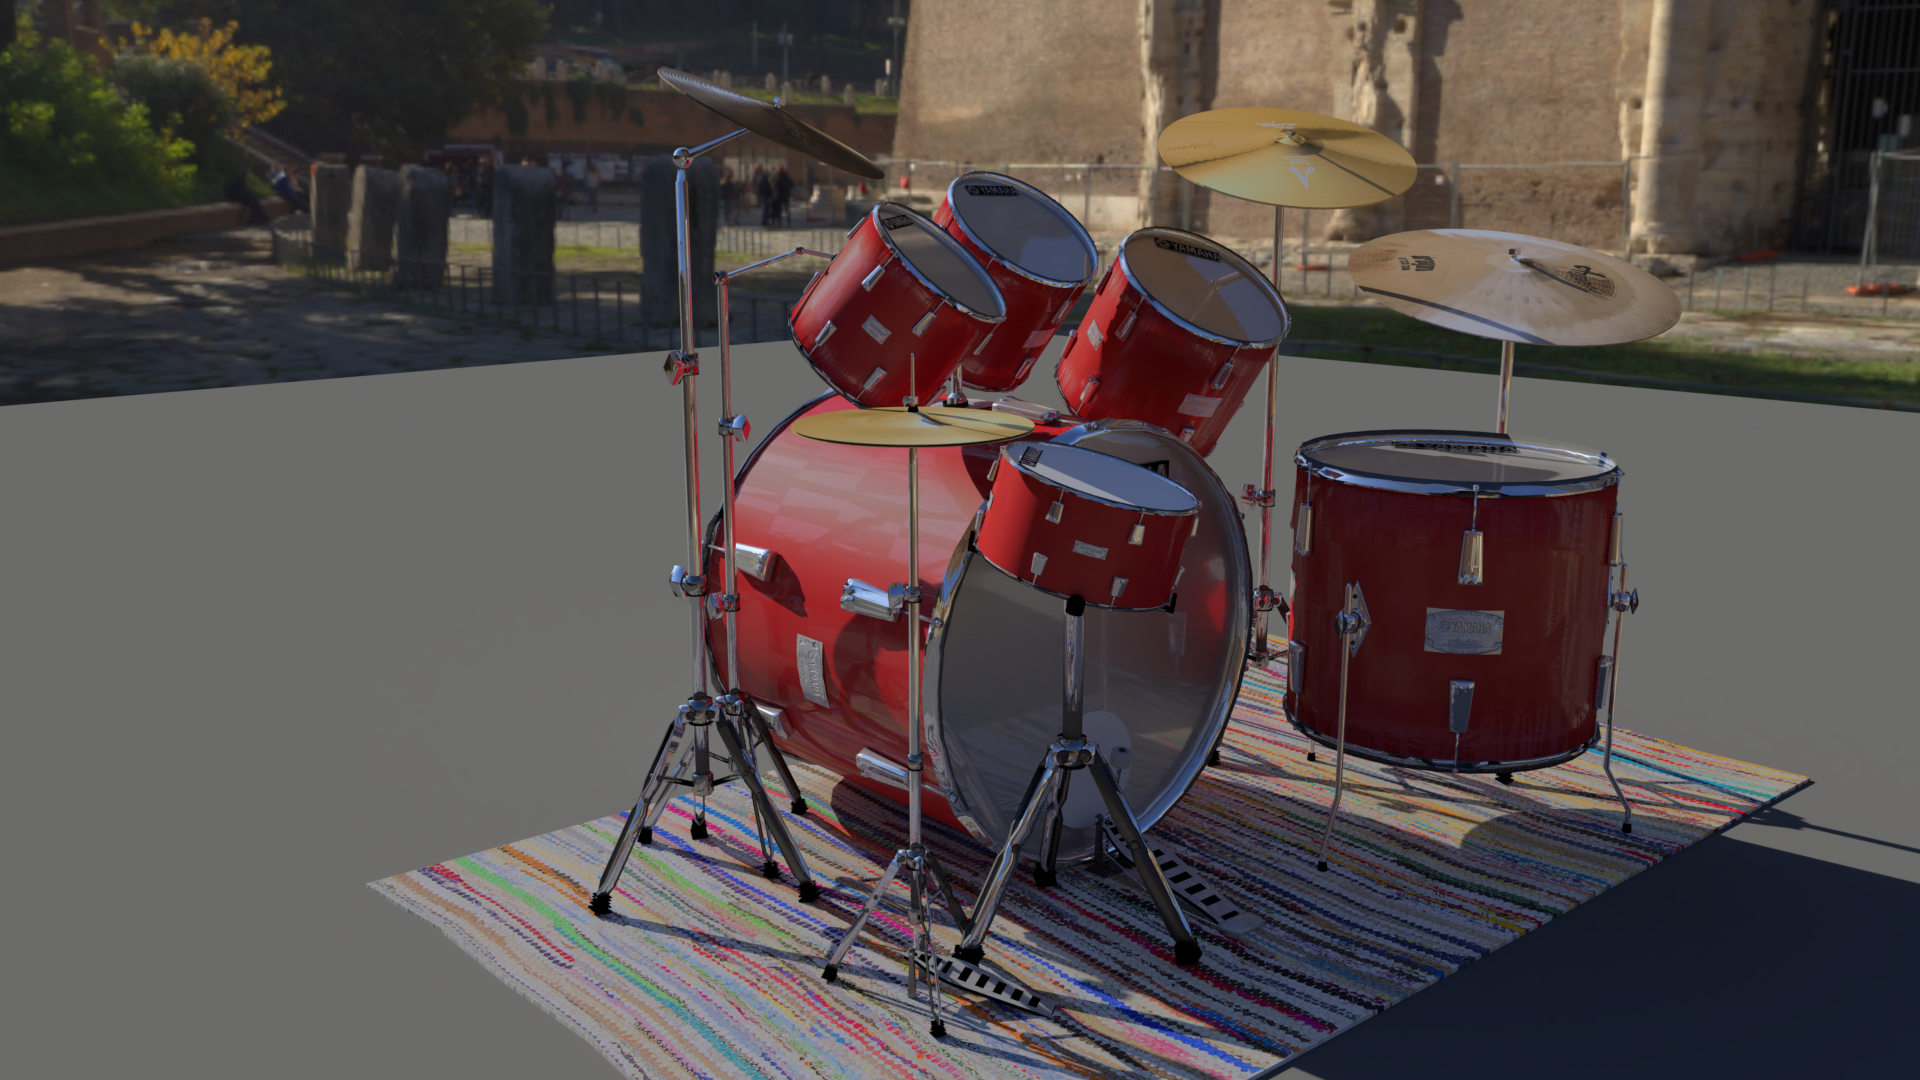 Drum Kit Yamaha preview image 1